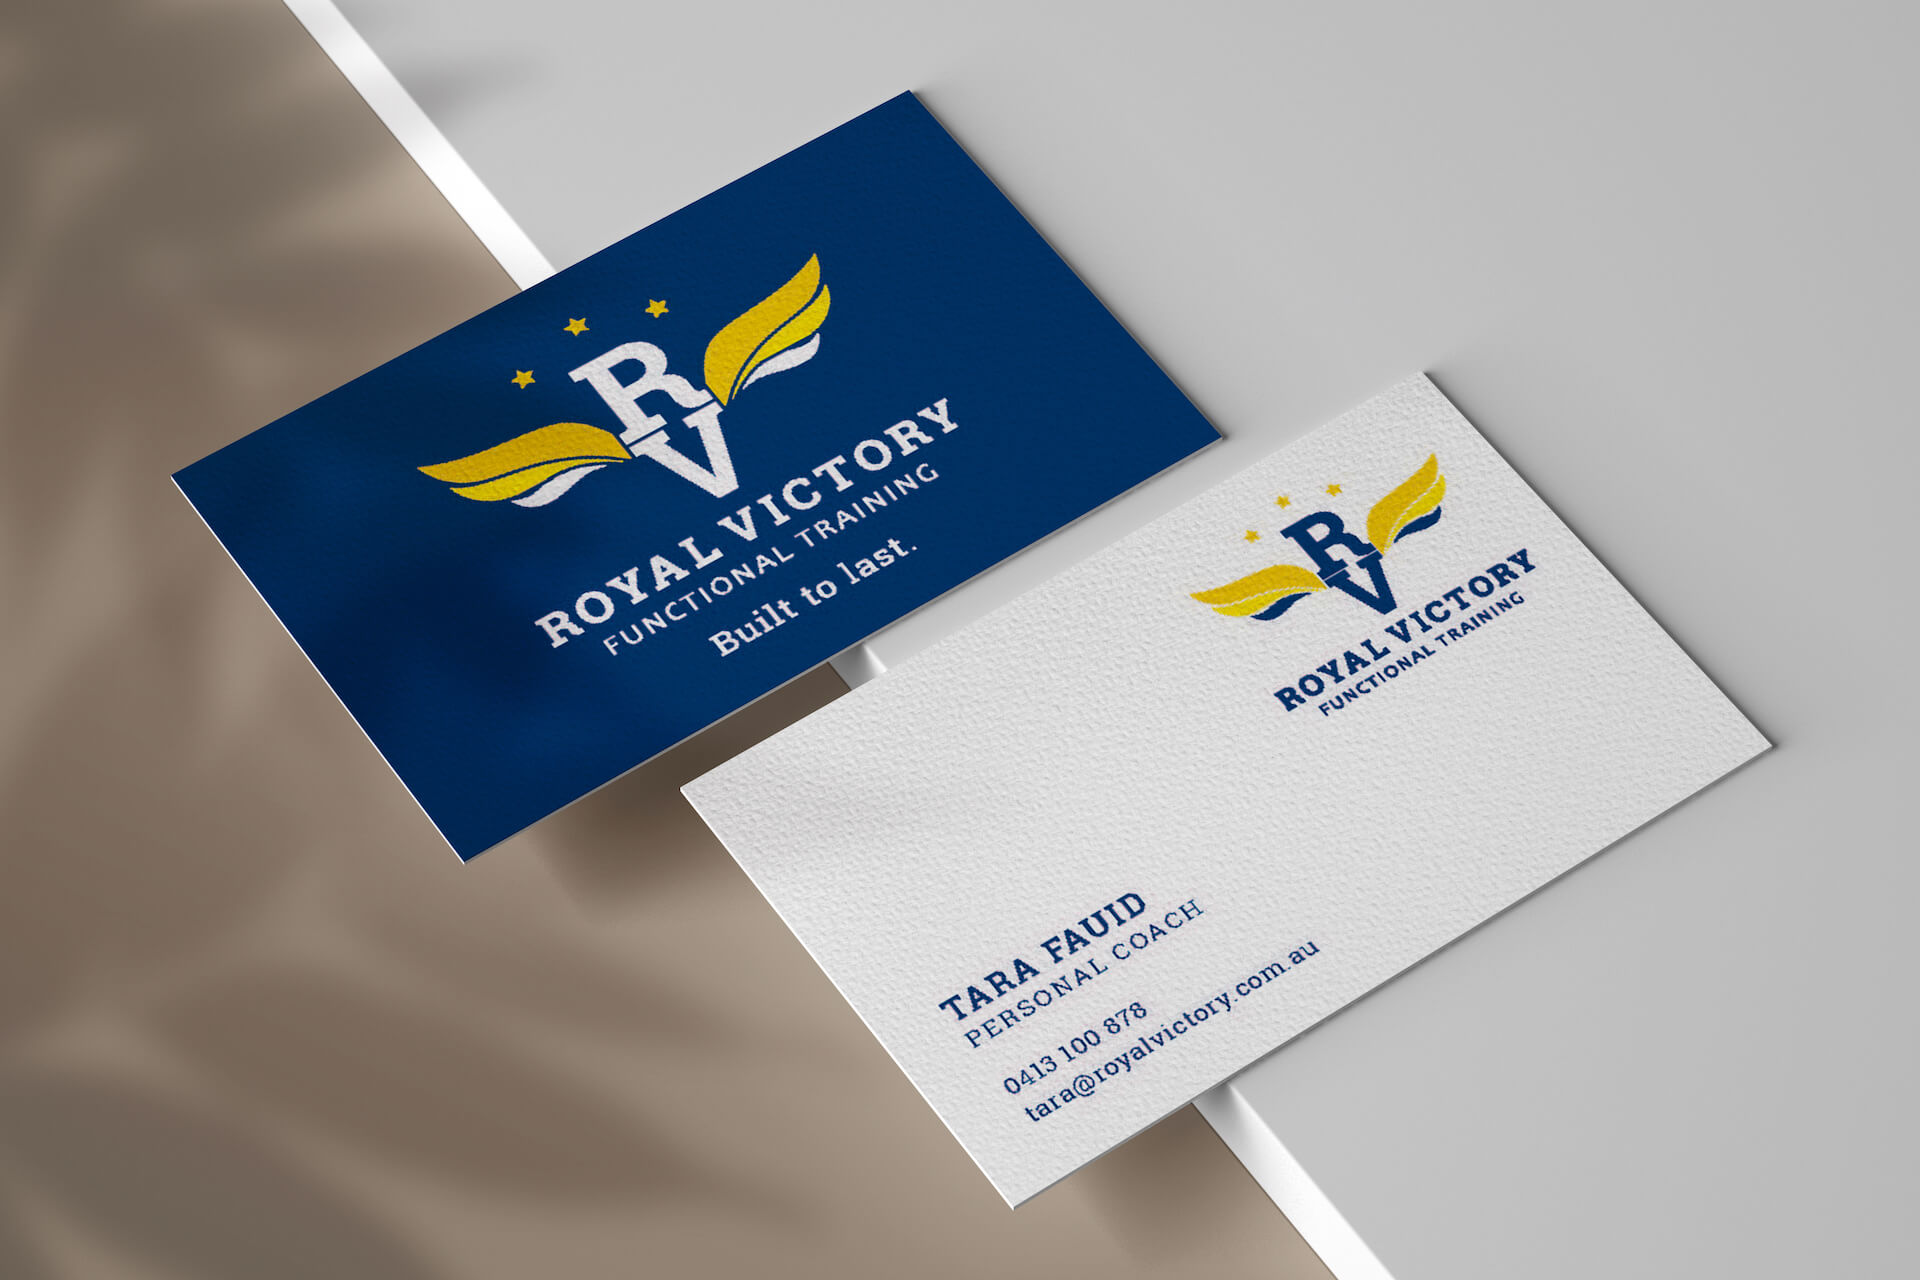 Royal Victory Business Card Design